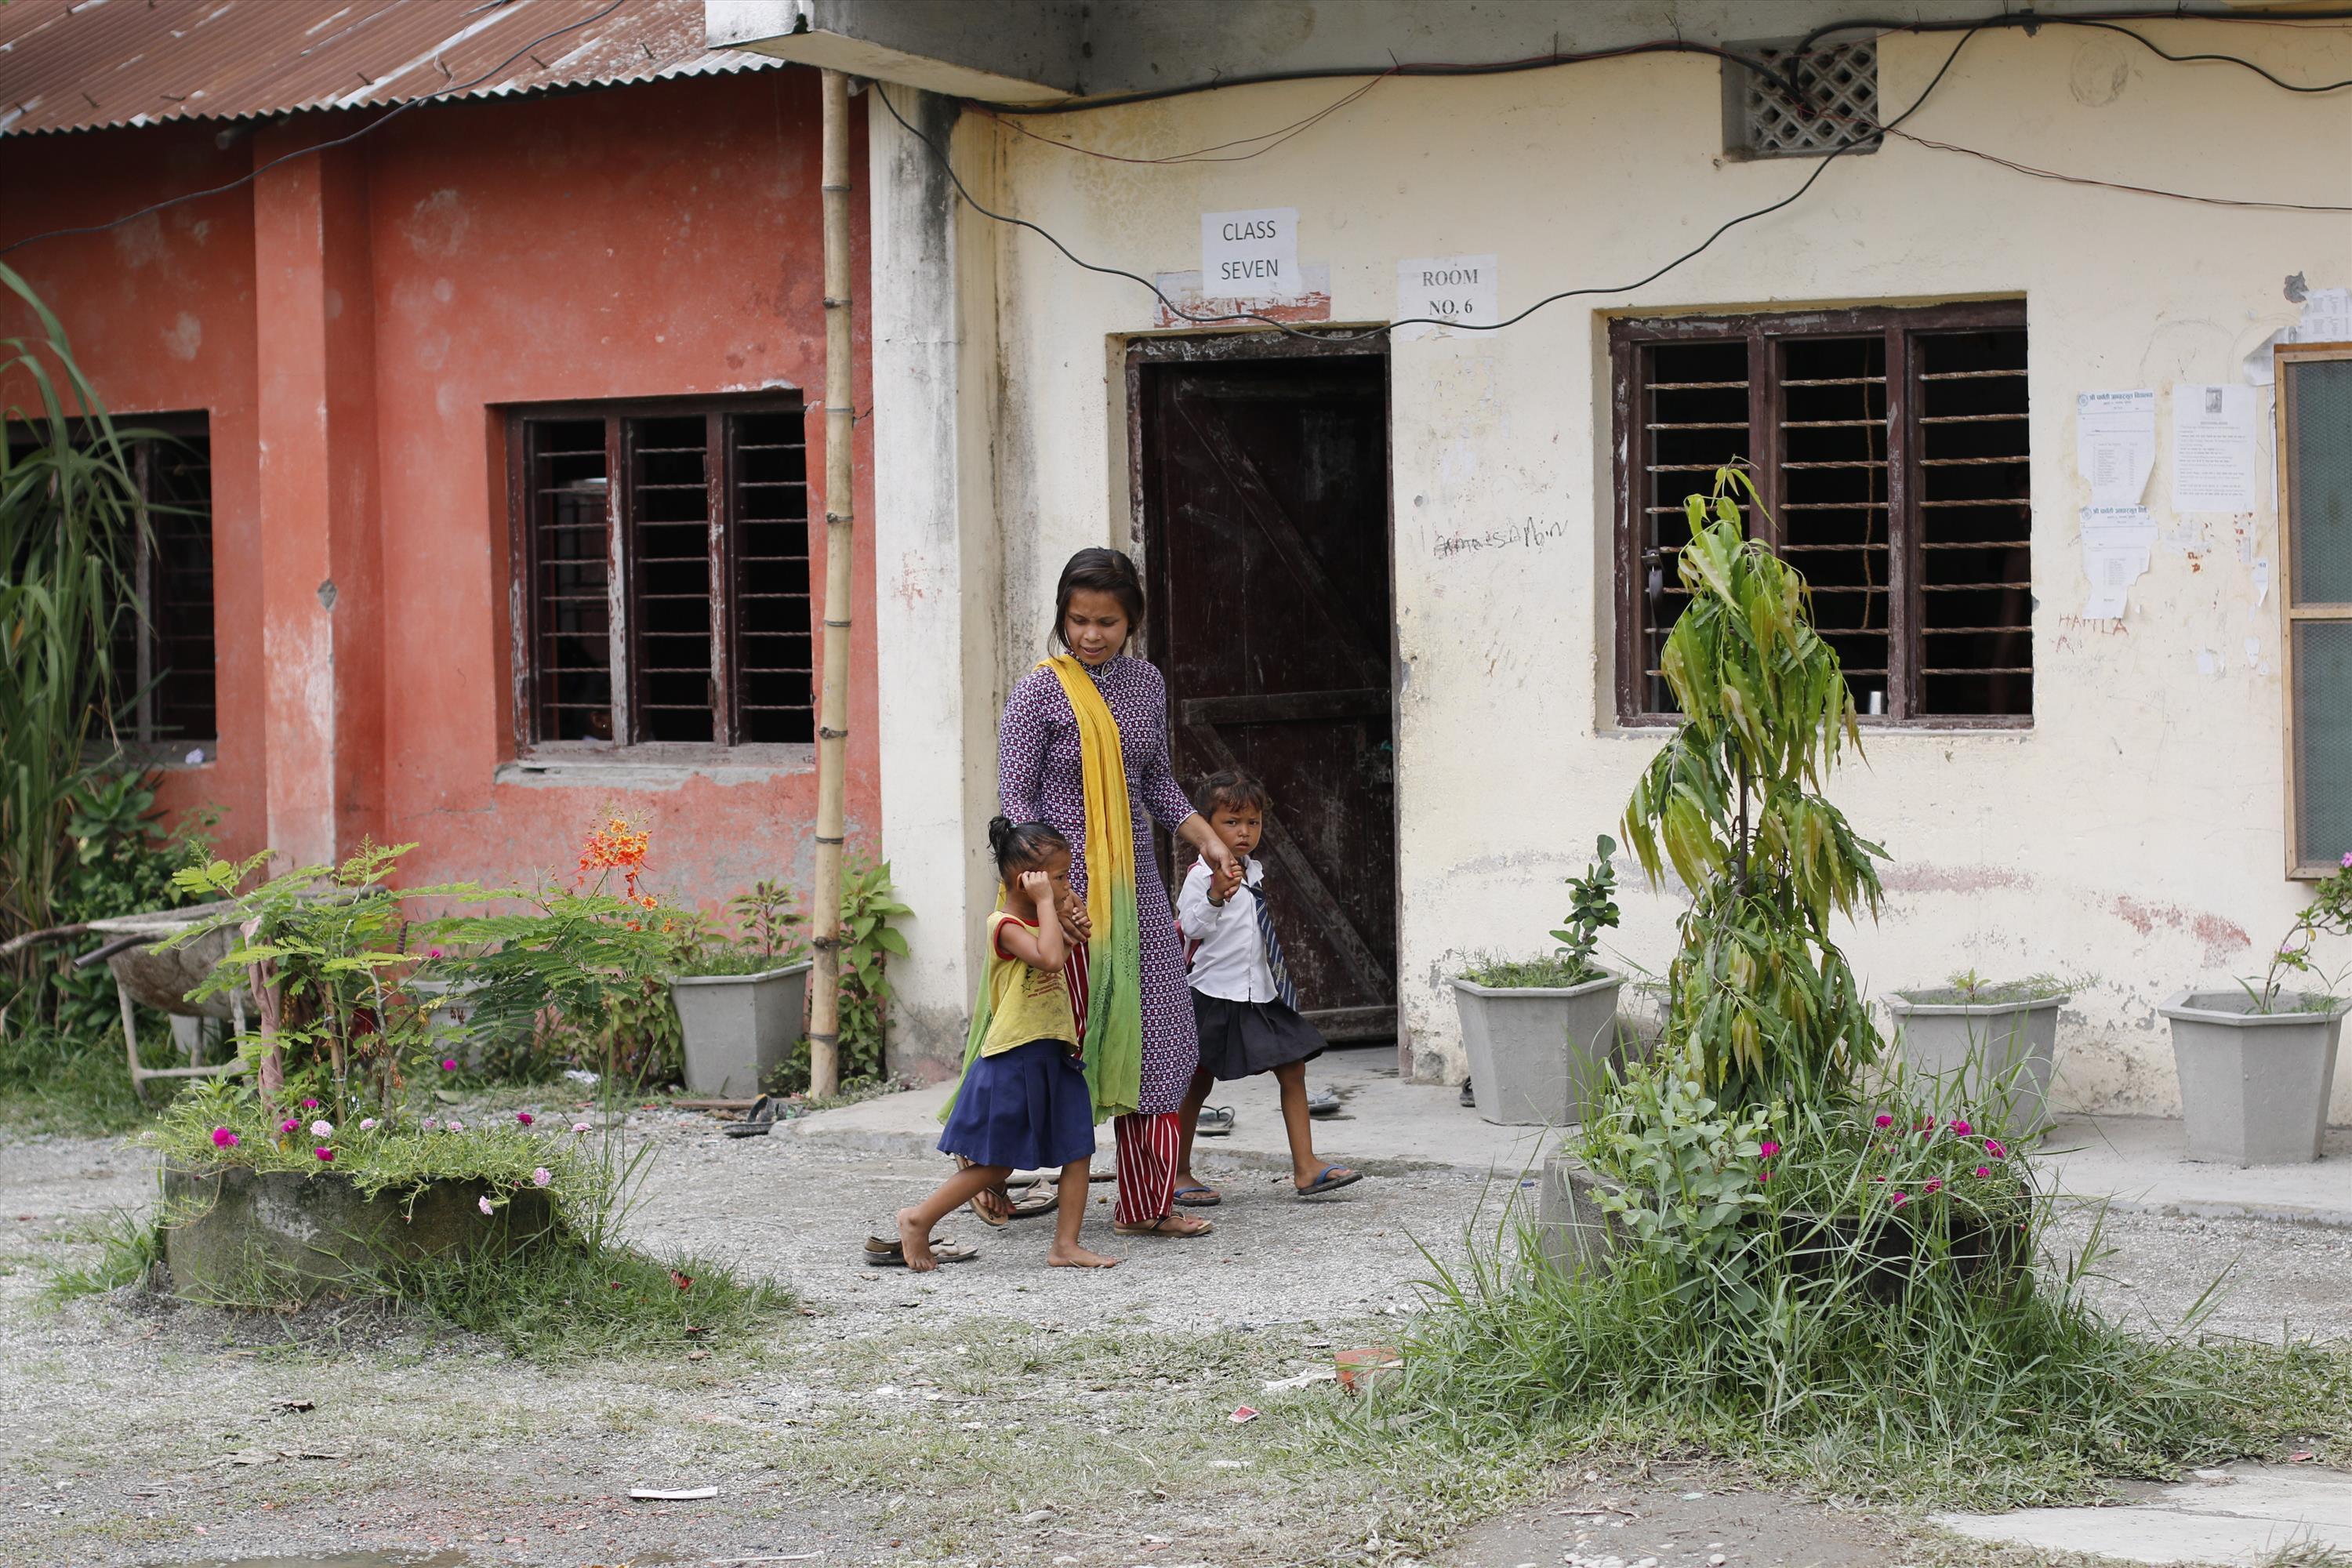 Prabha guides the two children to their classes